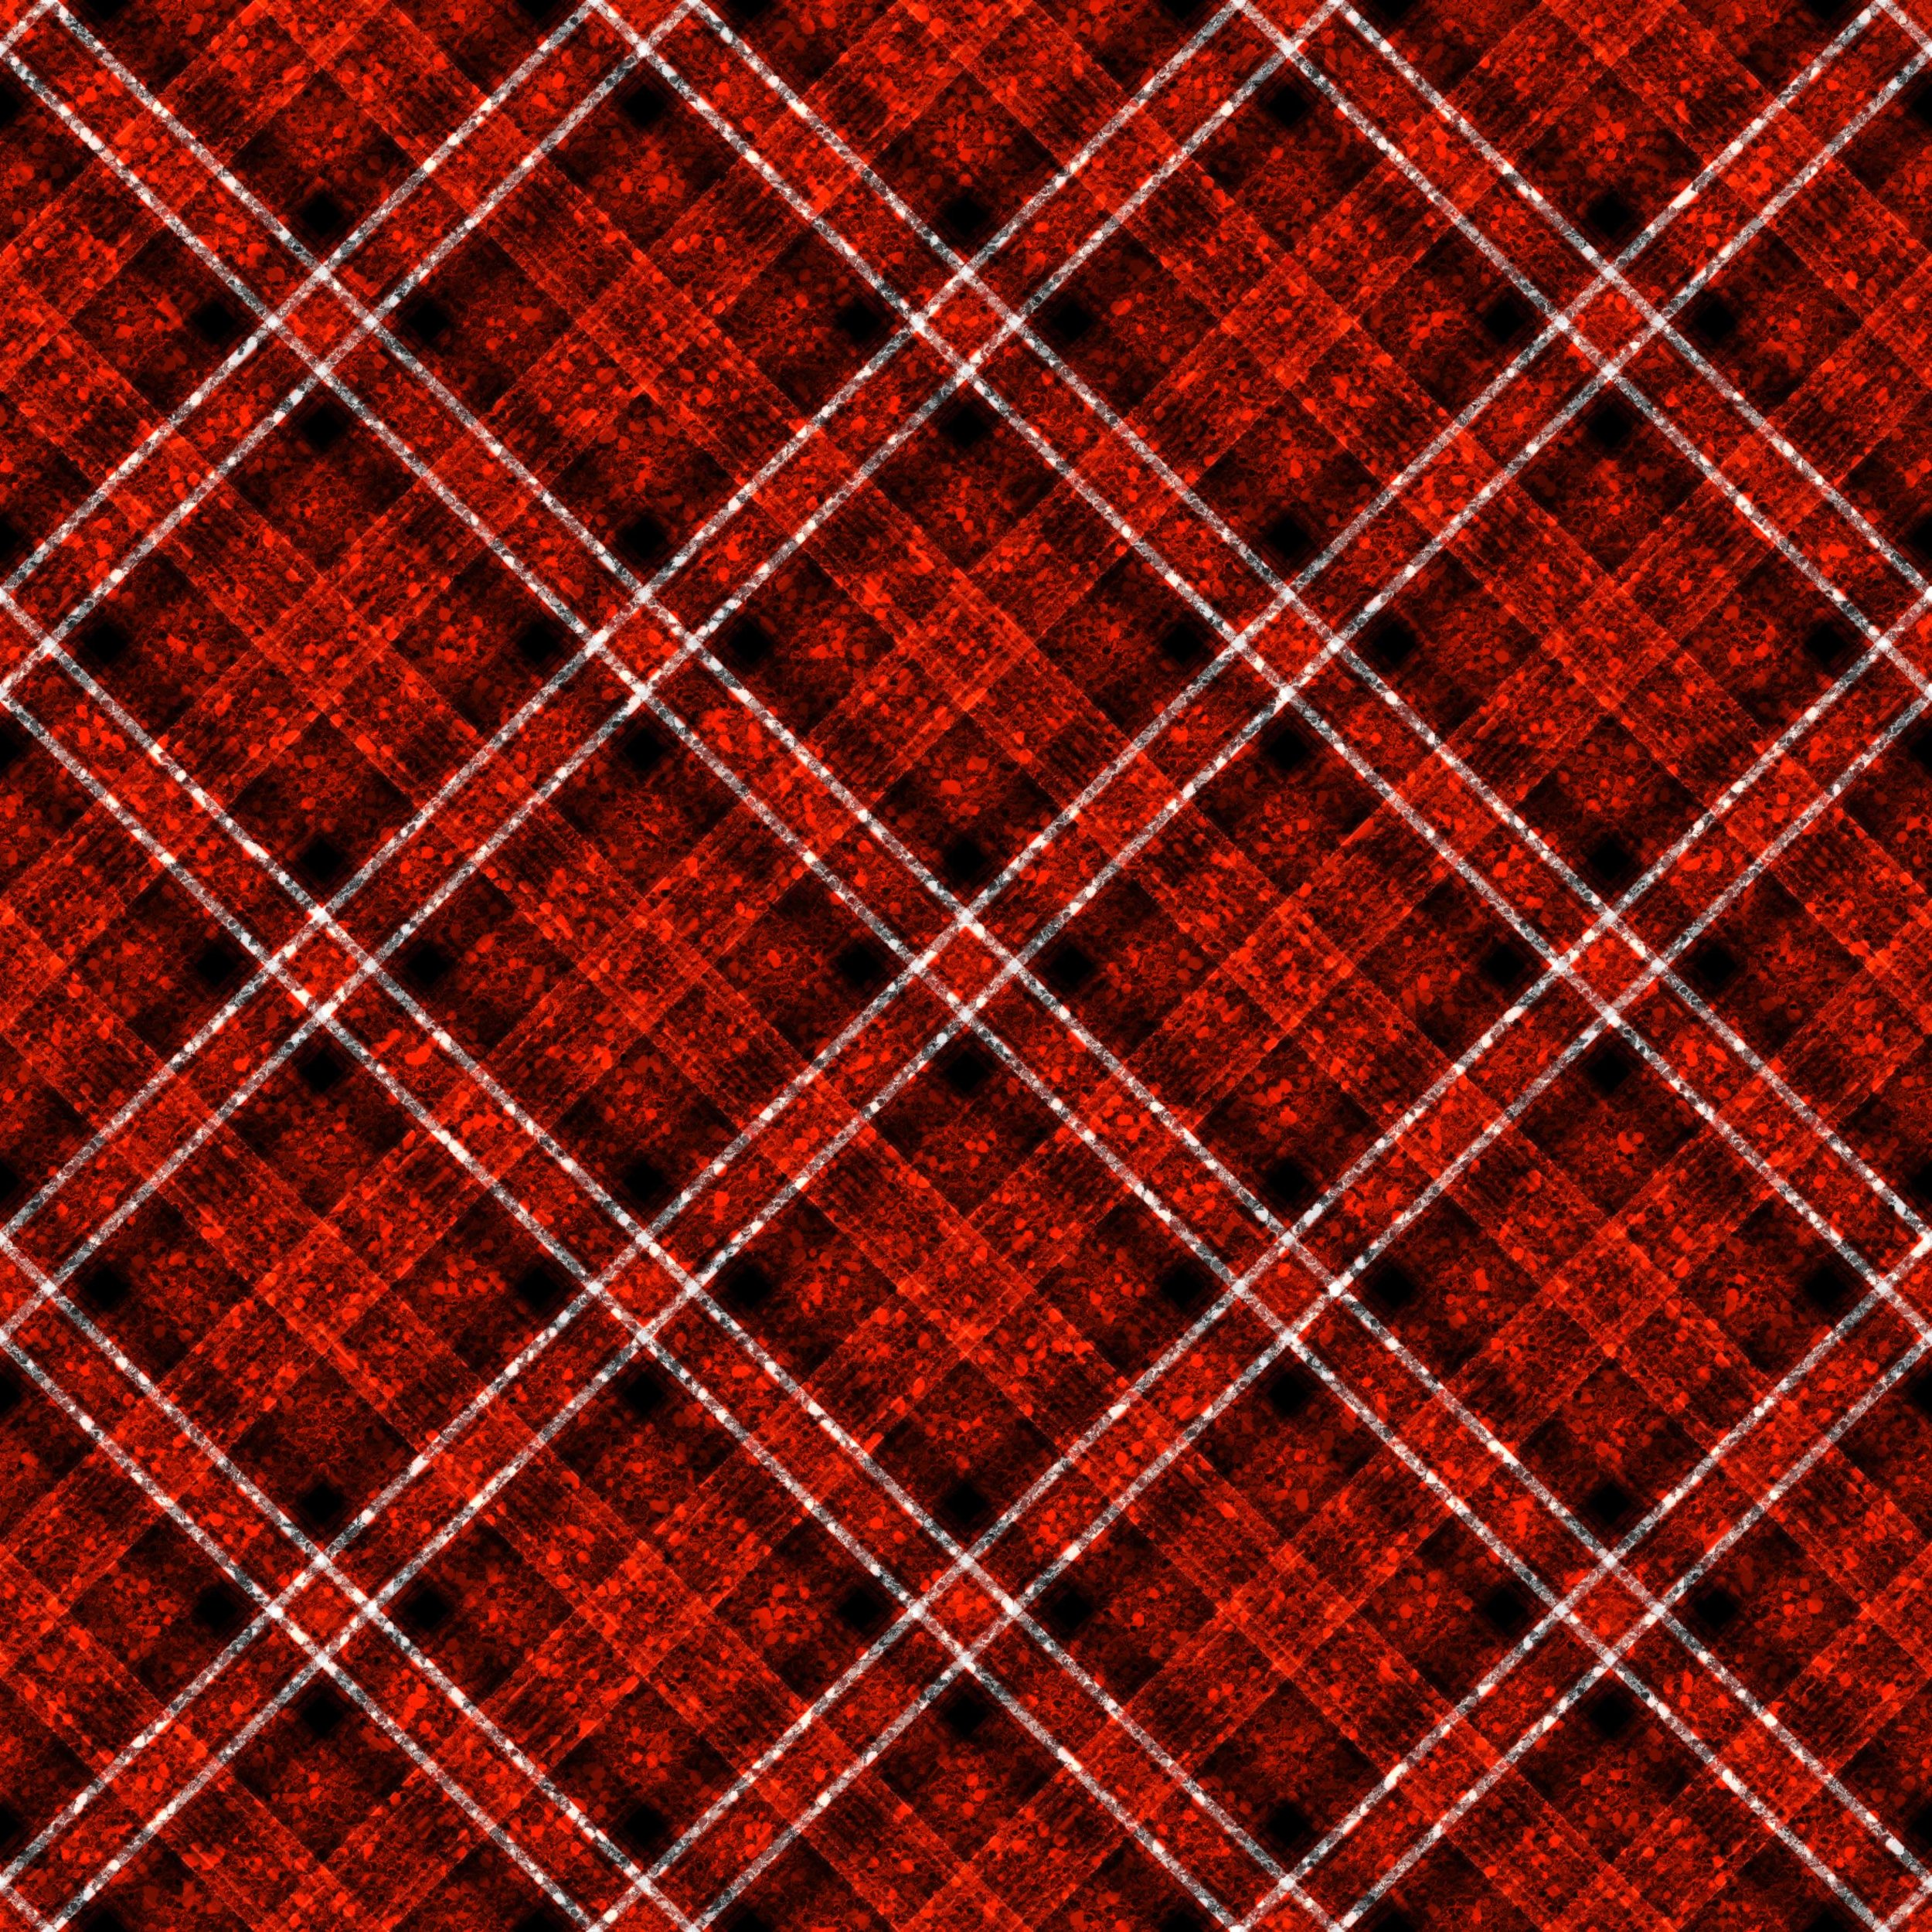 Red and Black Glitter plaid